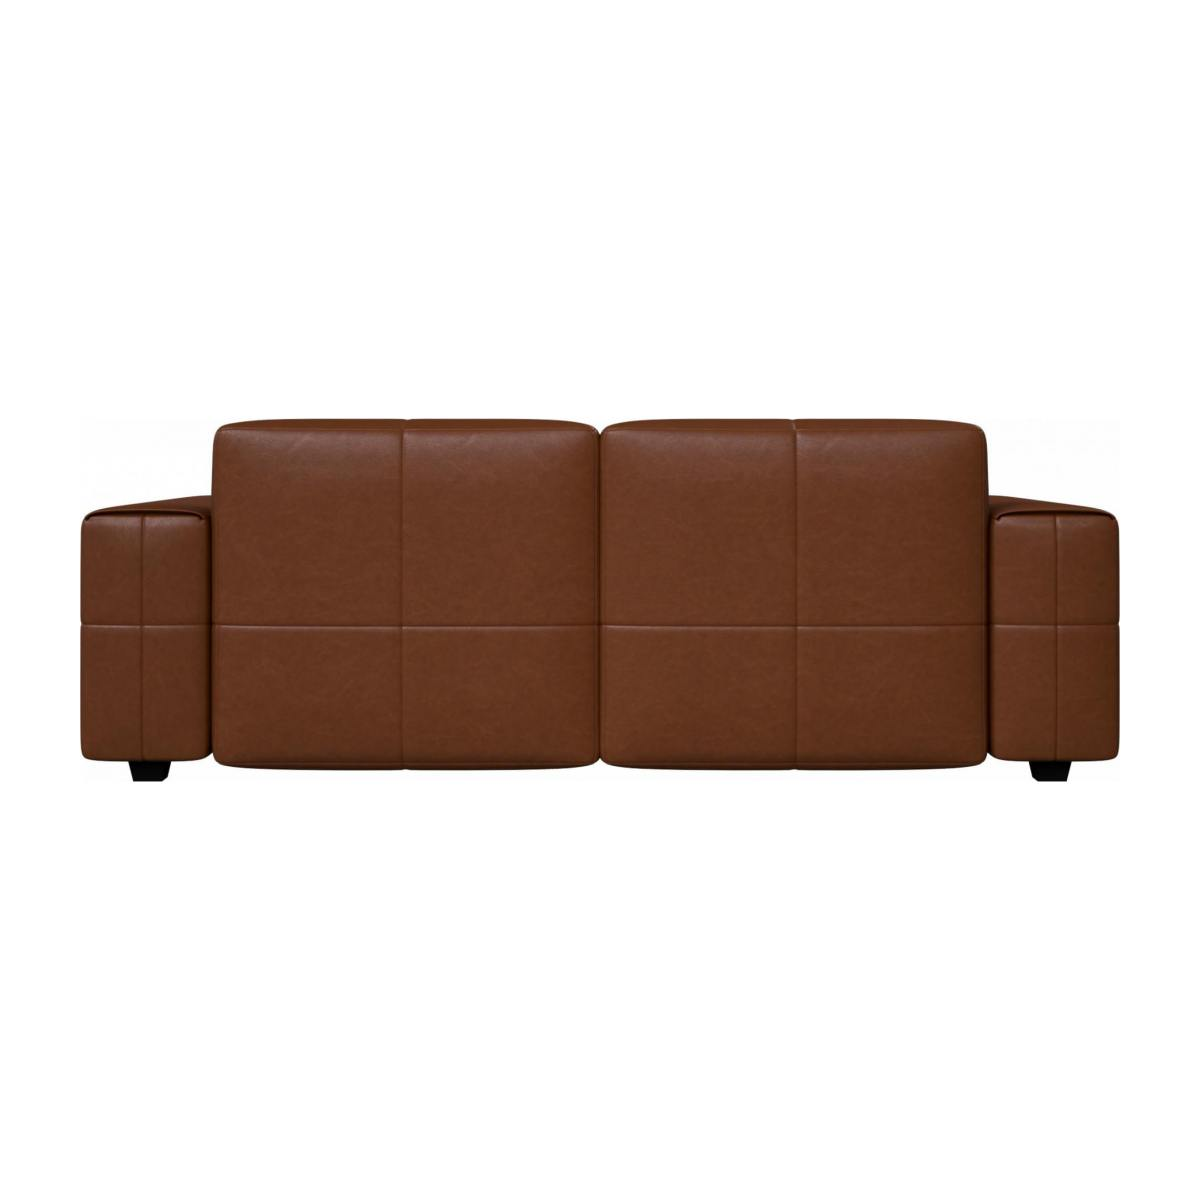 3 seater sofa in Vintage aniline leather, old chestnut n°4